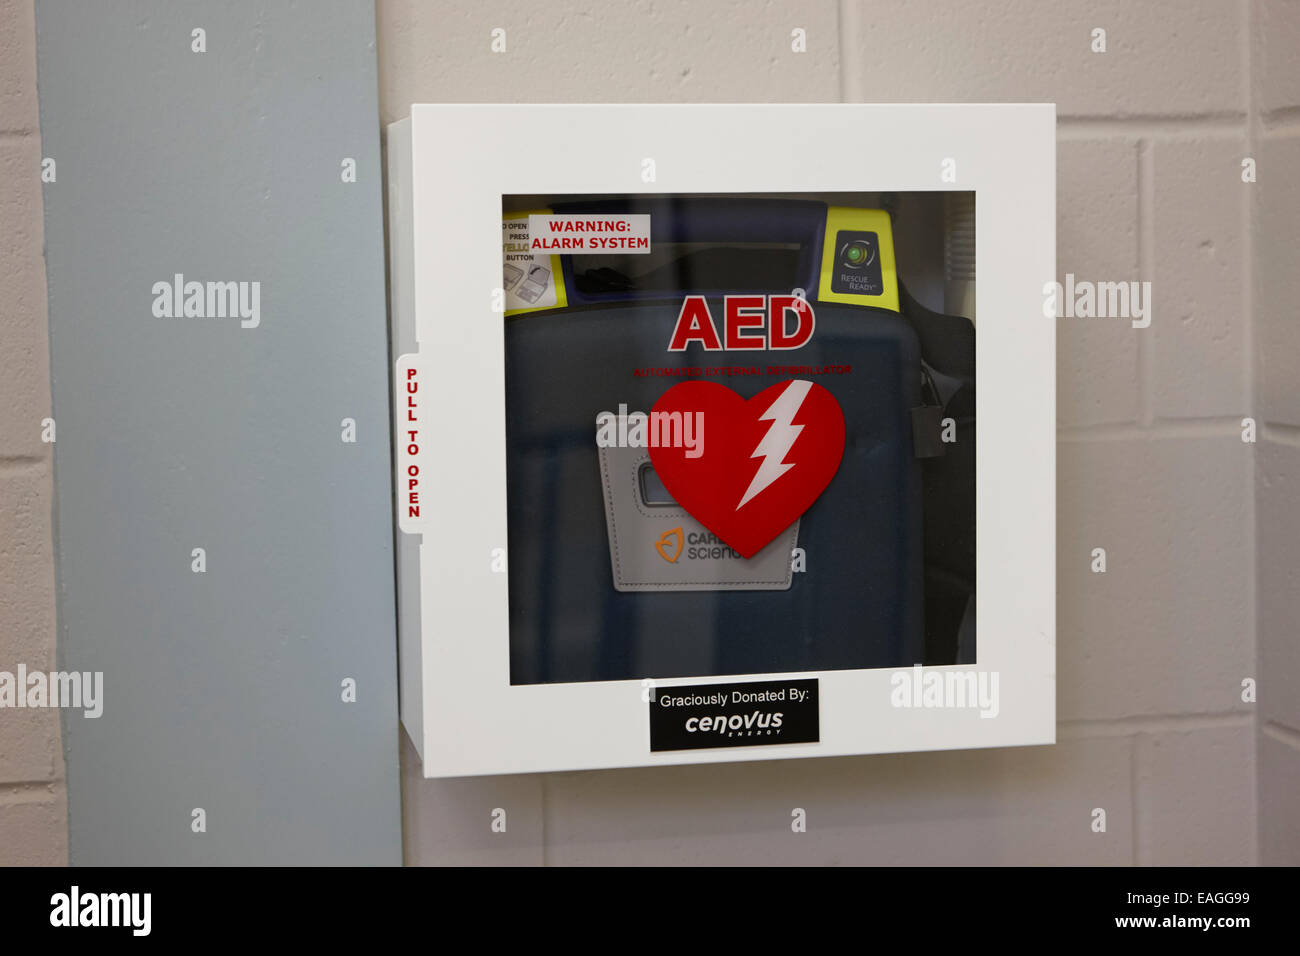 aed automated external defibrillator installed in a high school public place Saskatchewan Canada - Stock Image